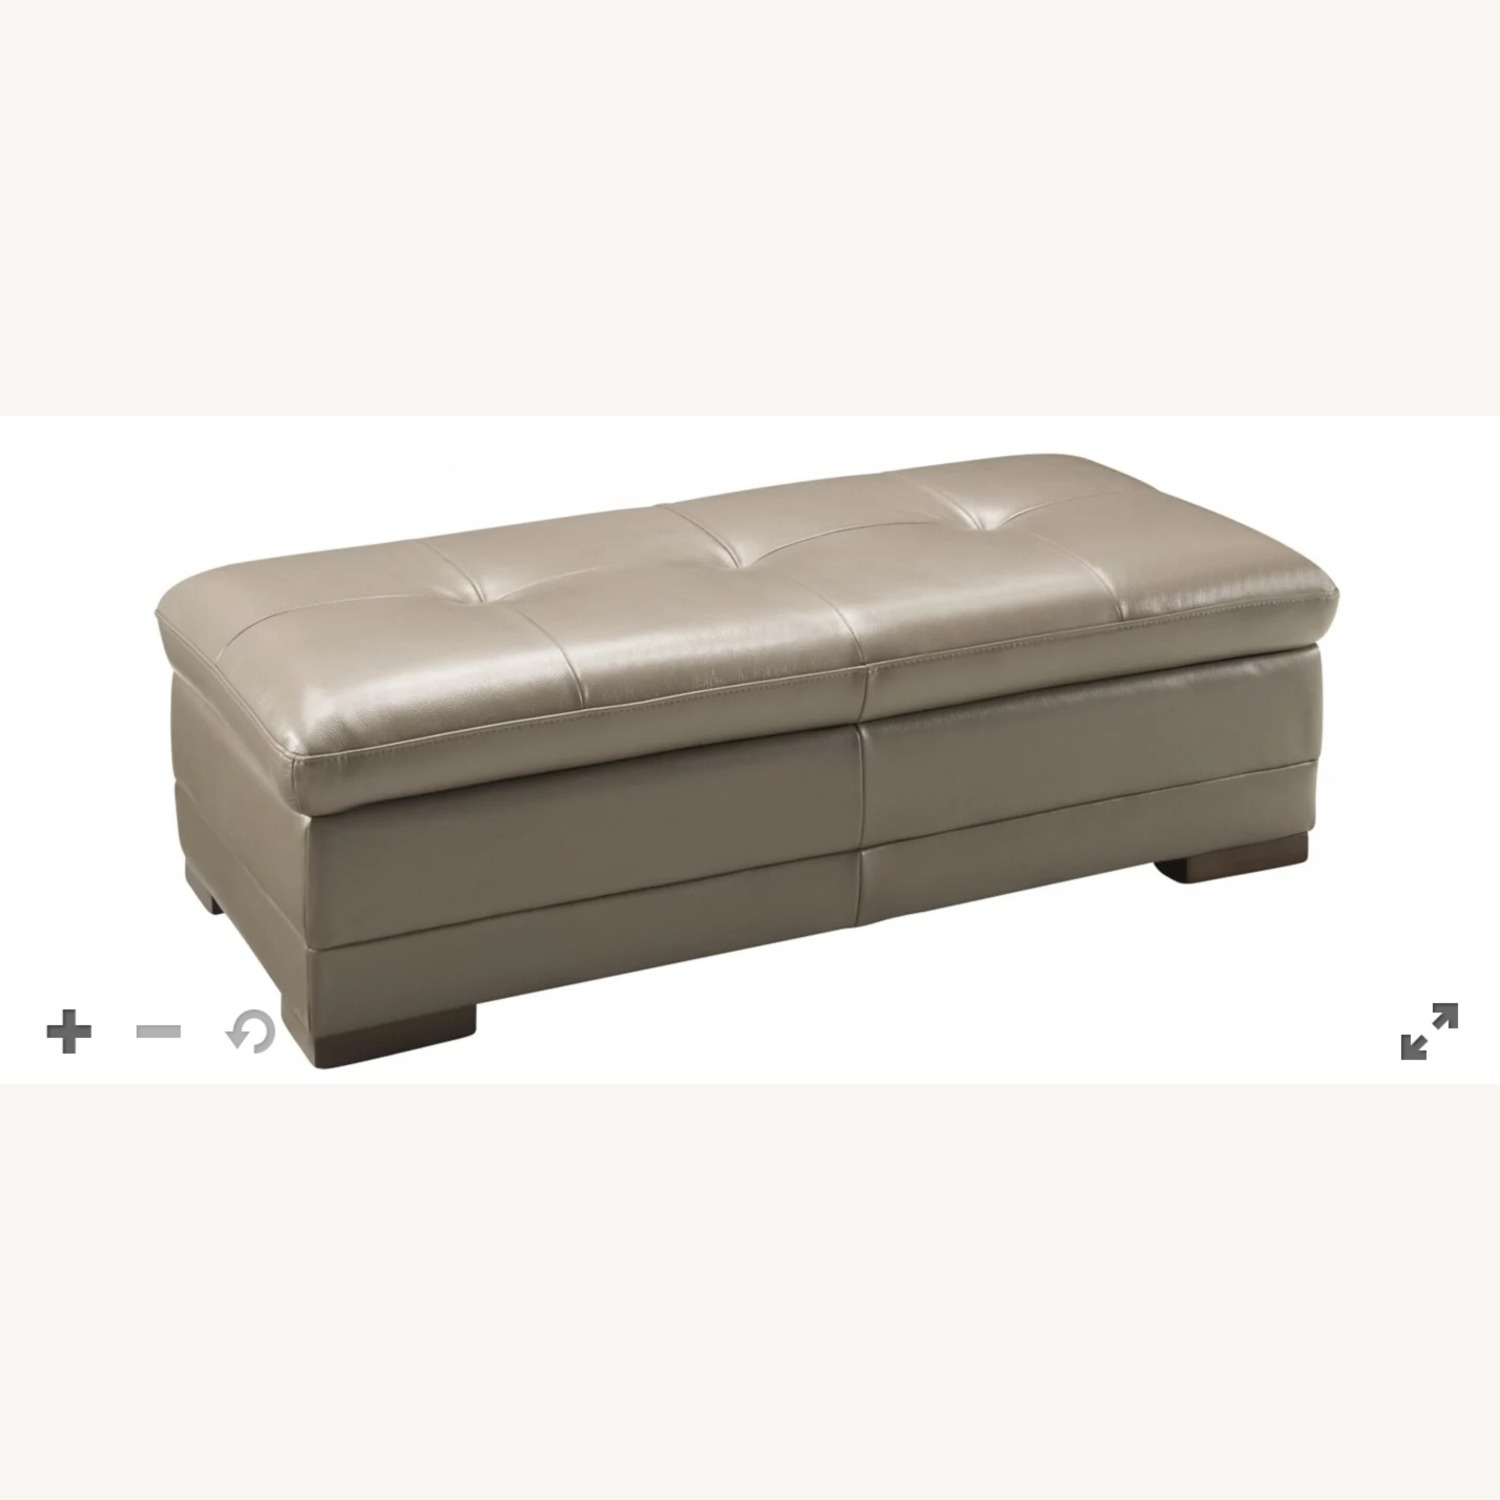 Raymour & Flanigan Taupe Leather Cocktail Ottoman - image-3